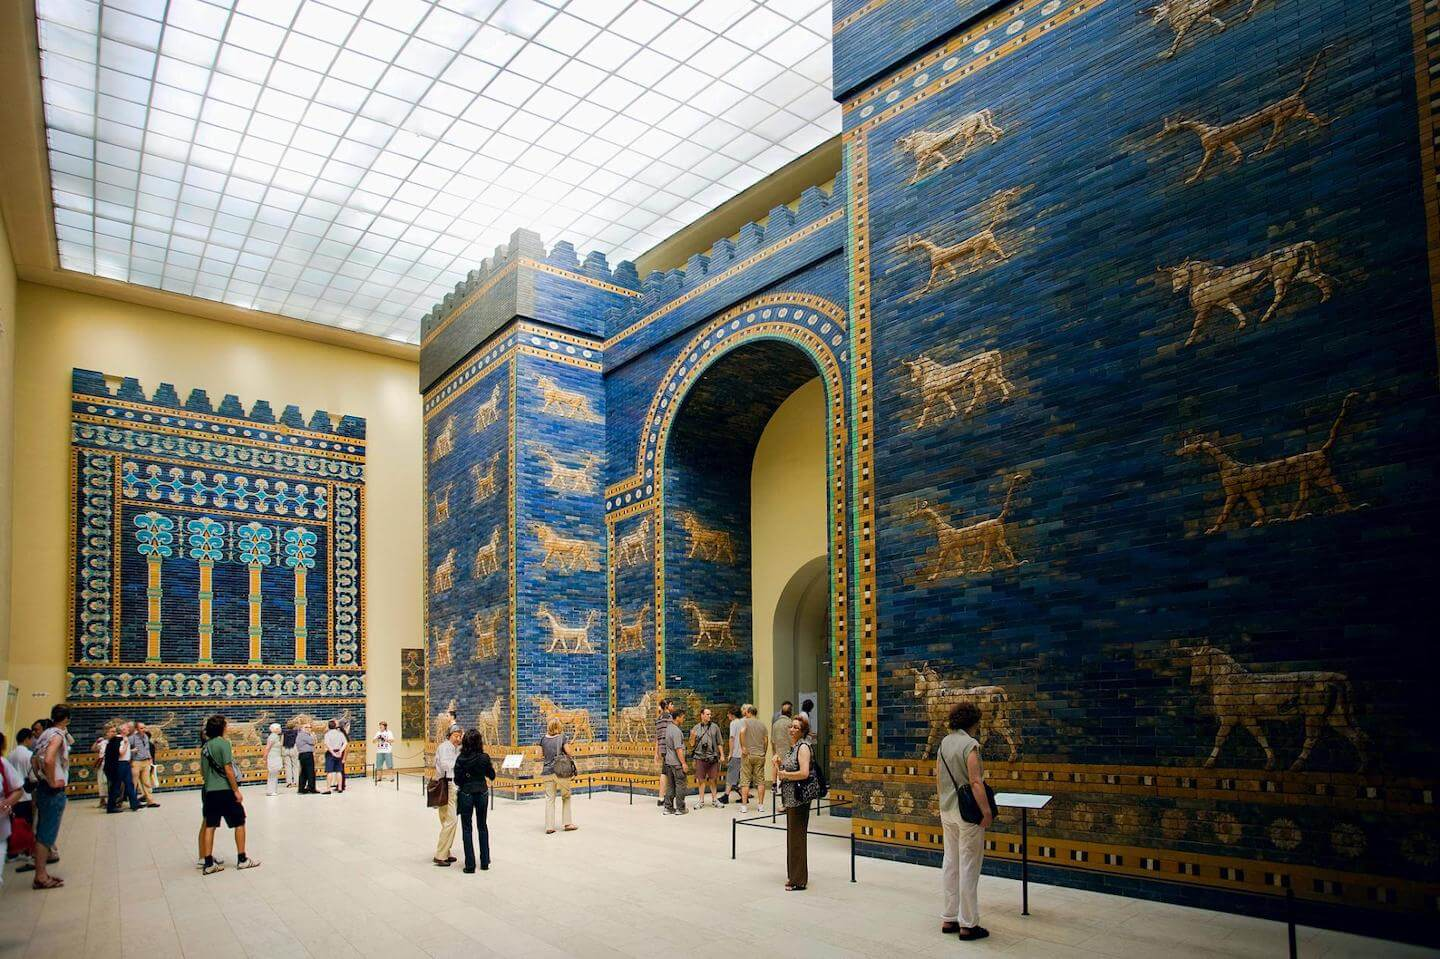 Photo of the blue and golden Ishtar Gate in Berlin.